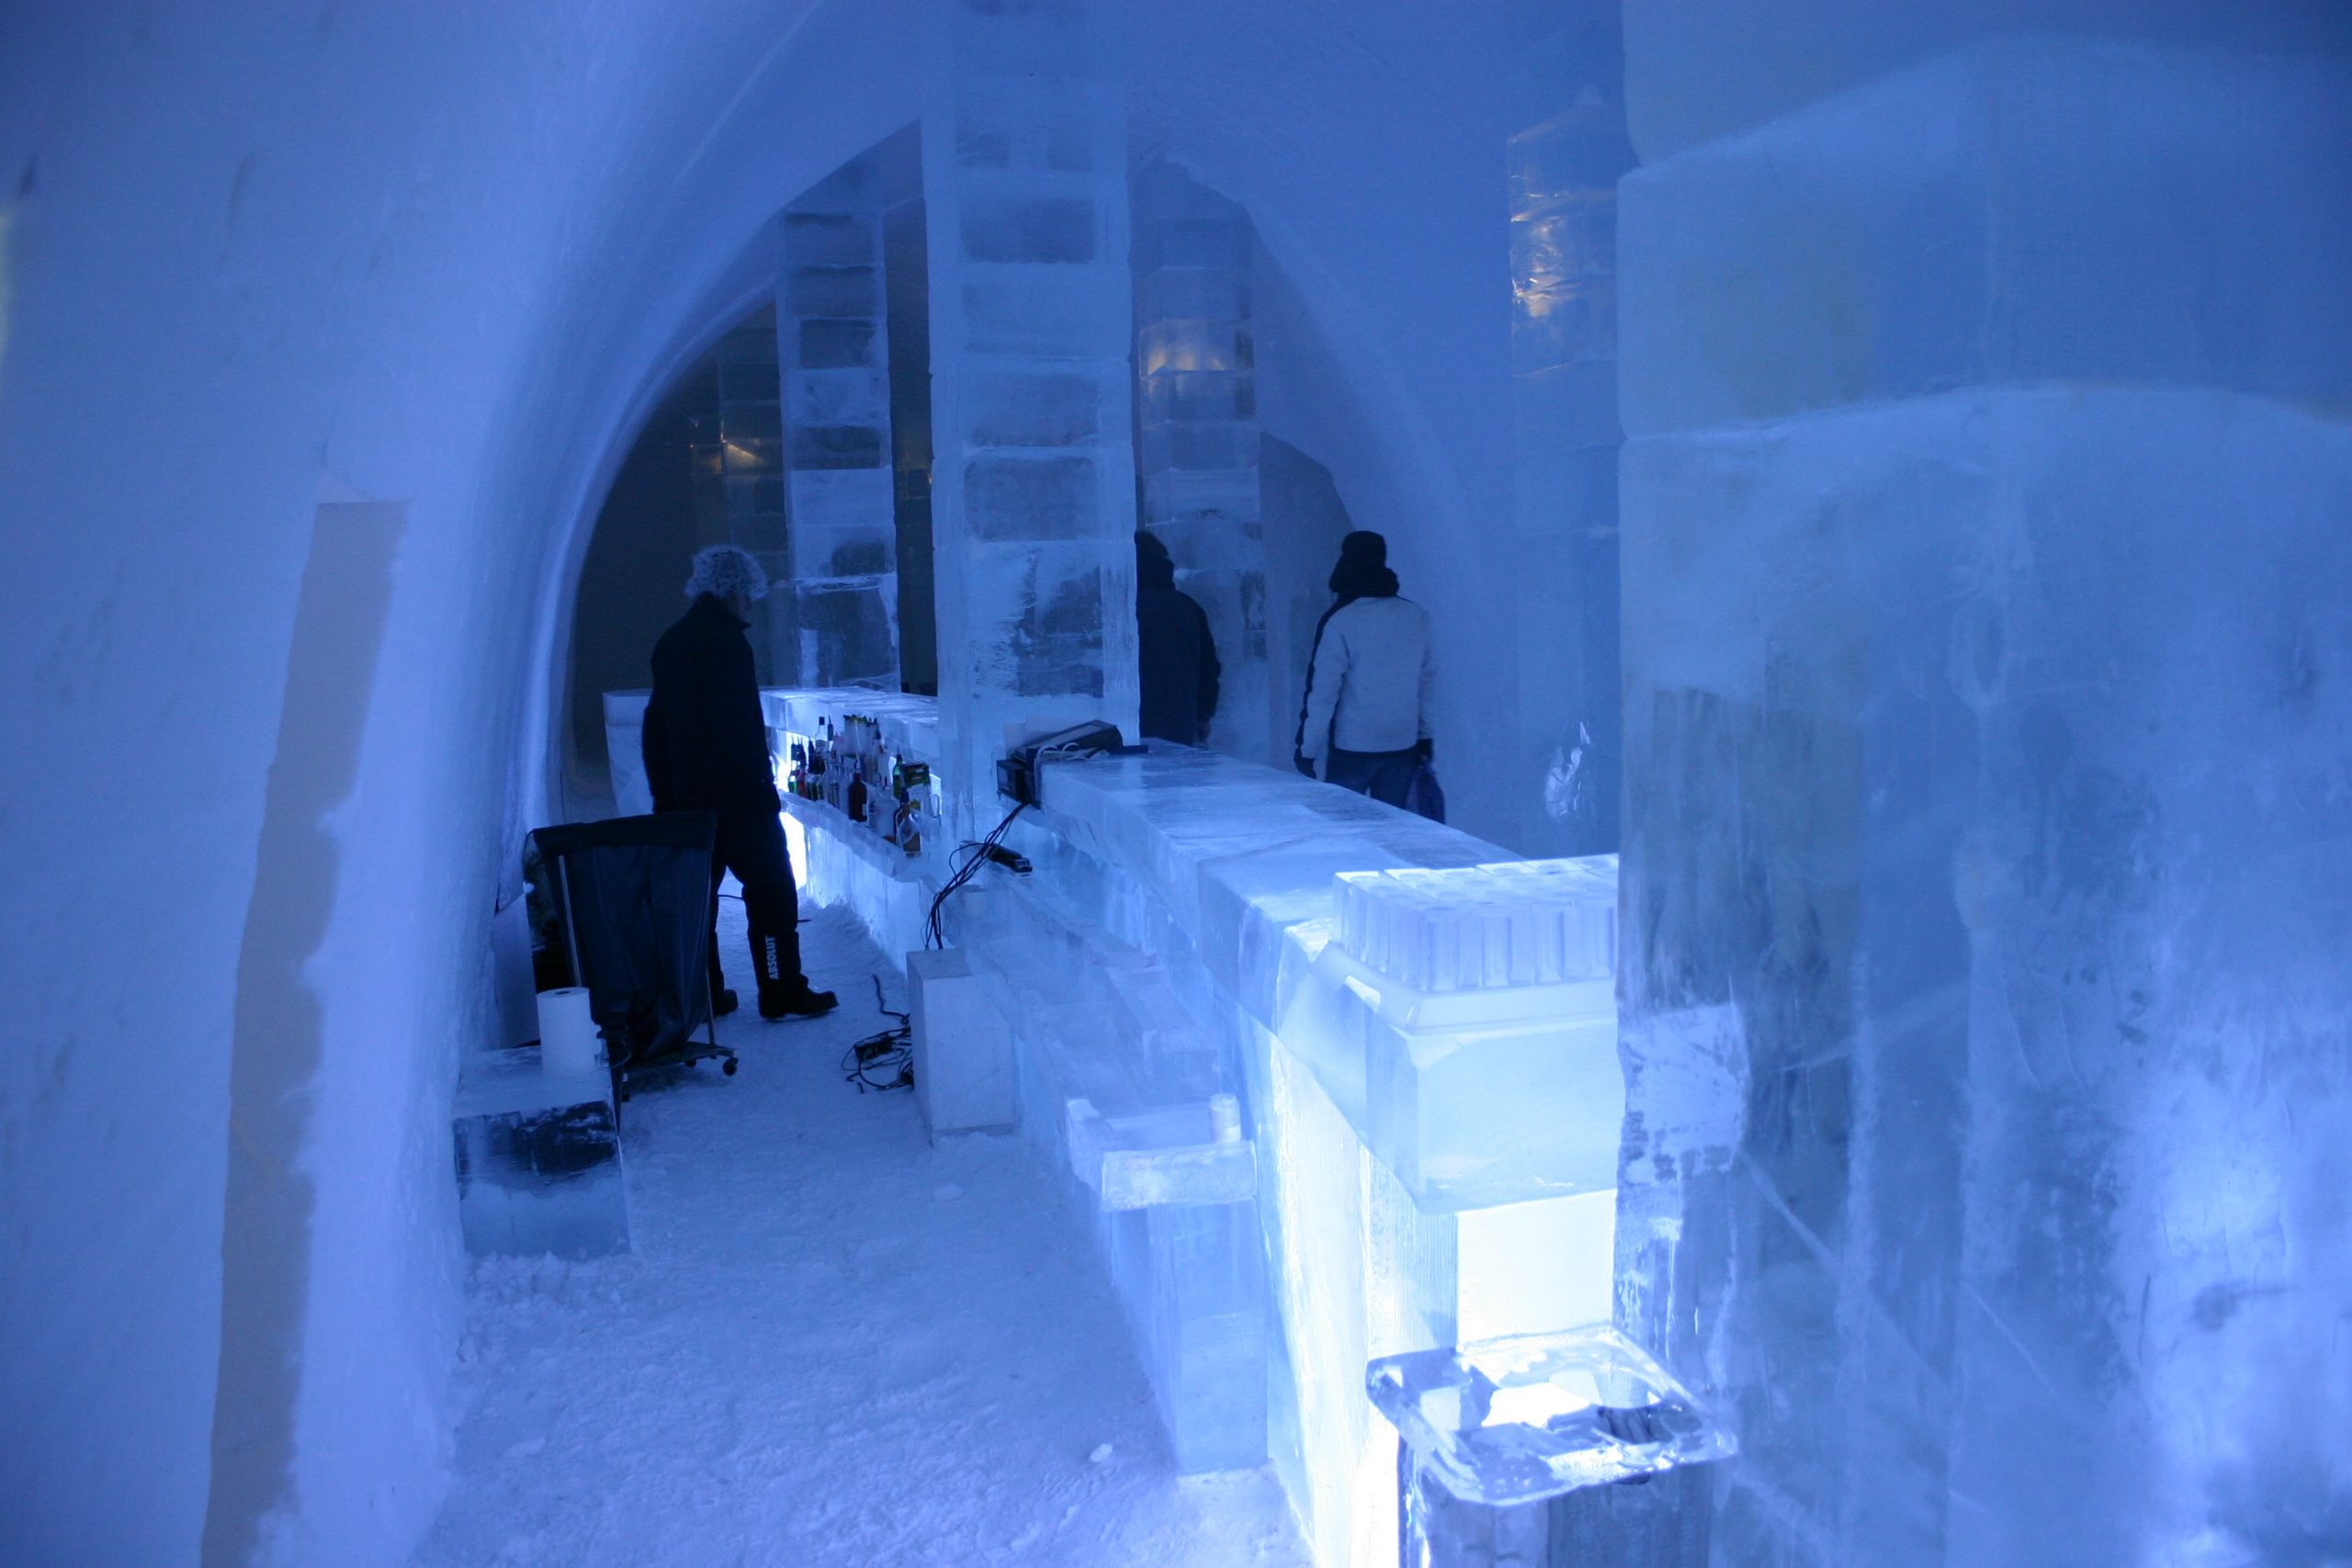 Kiruna and IceHotel of Jukkasjärvi: Popular Place to Visit in Sweden